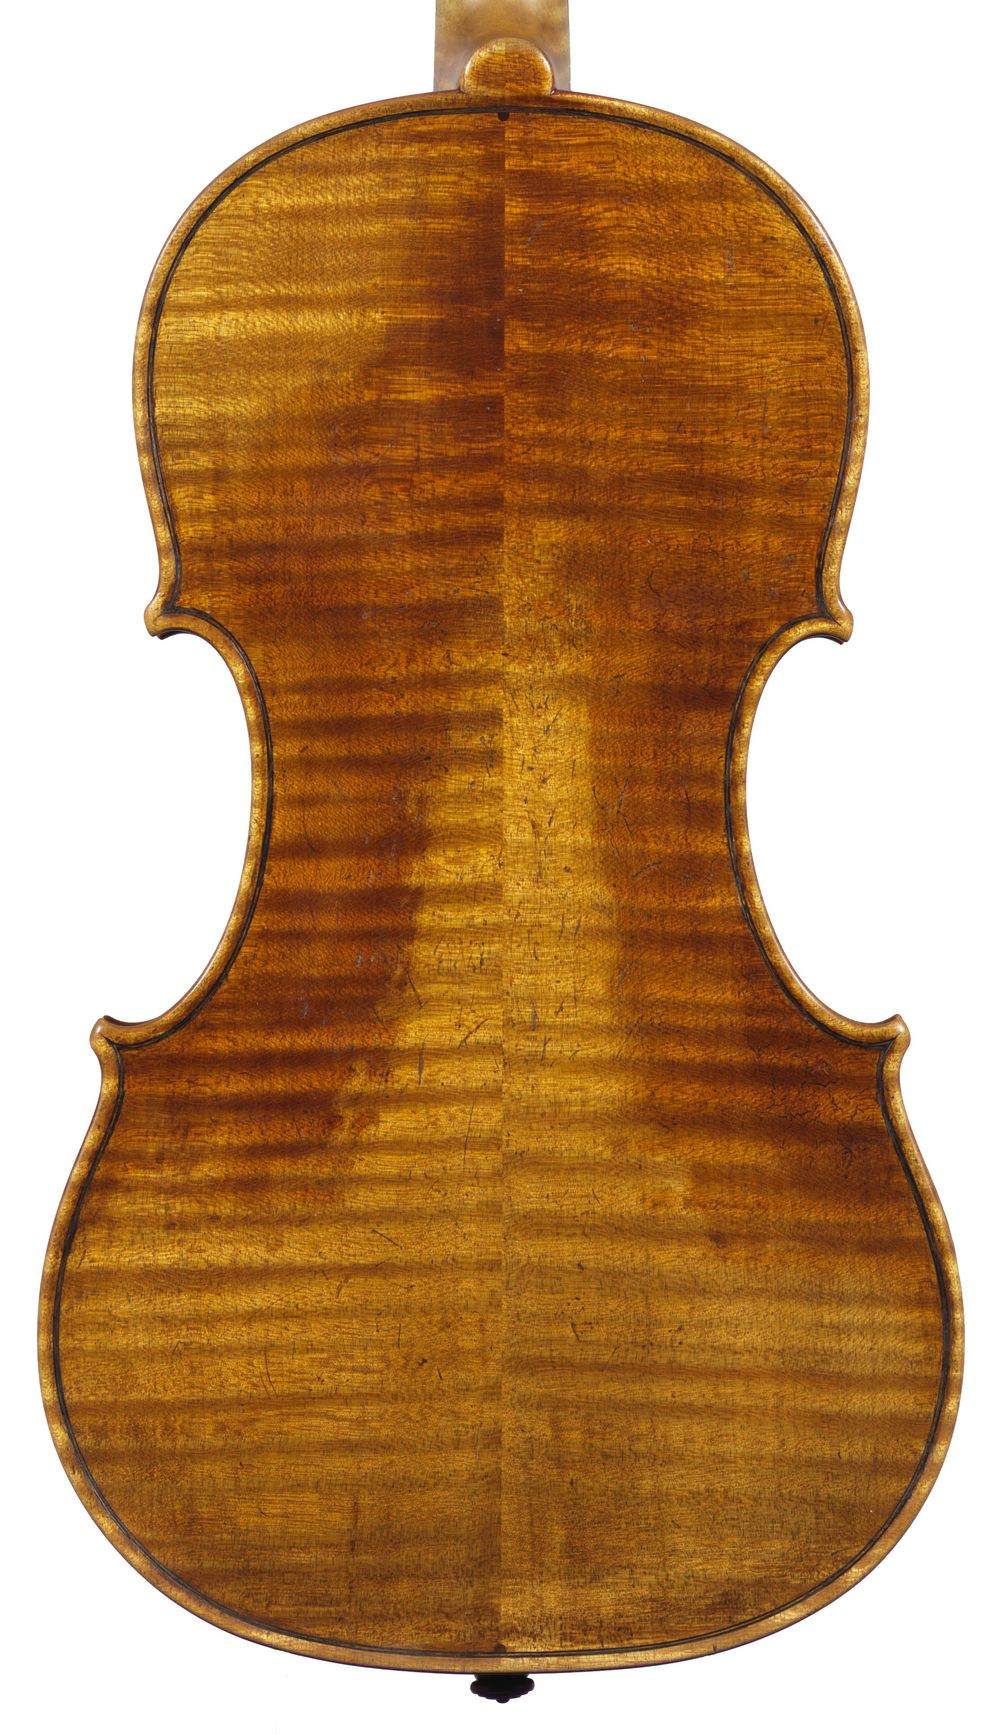 Paul Crowley DG violin back 2014.jpg